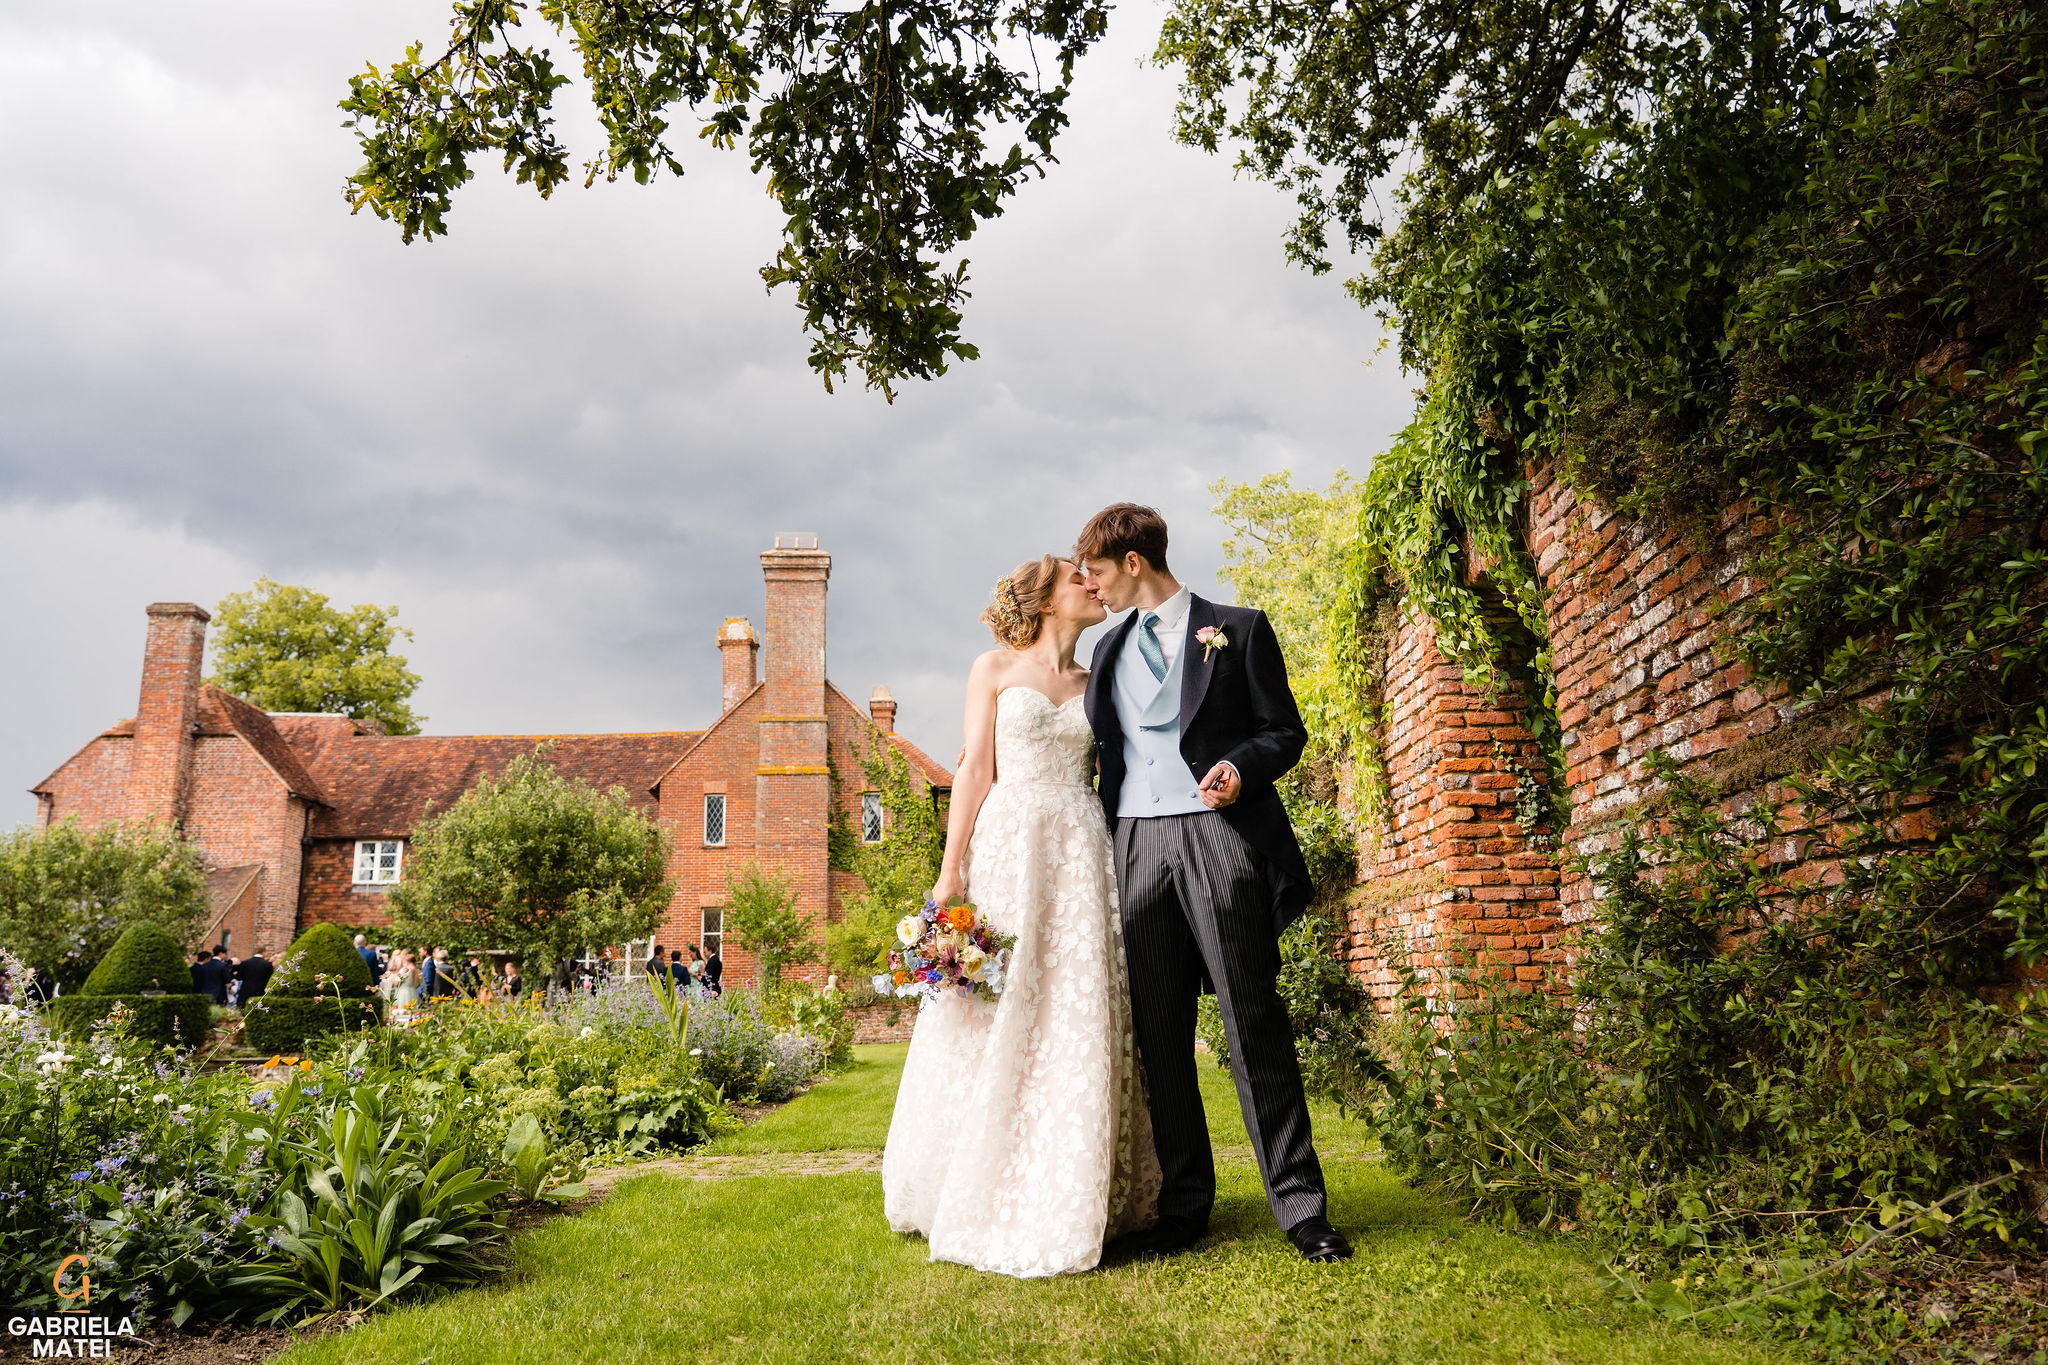 Gorgeous photo of bride and groom kissing in Bore Place garden with Bore Place House in the background at Bore Place wedding by gabriela matei